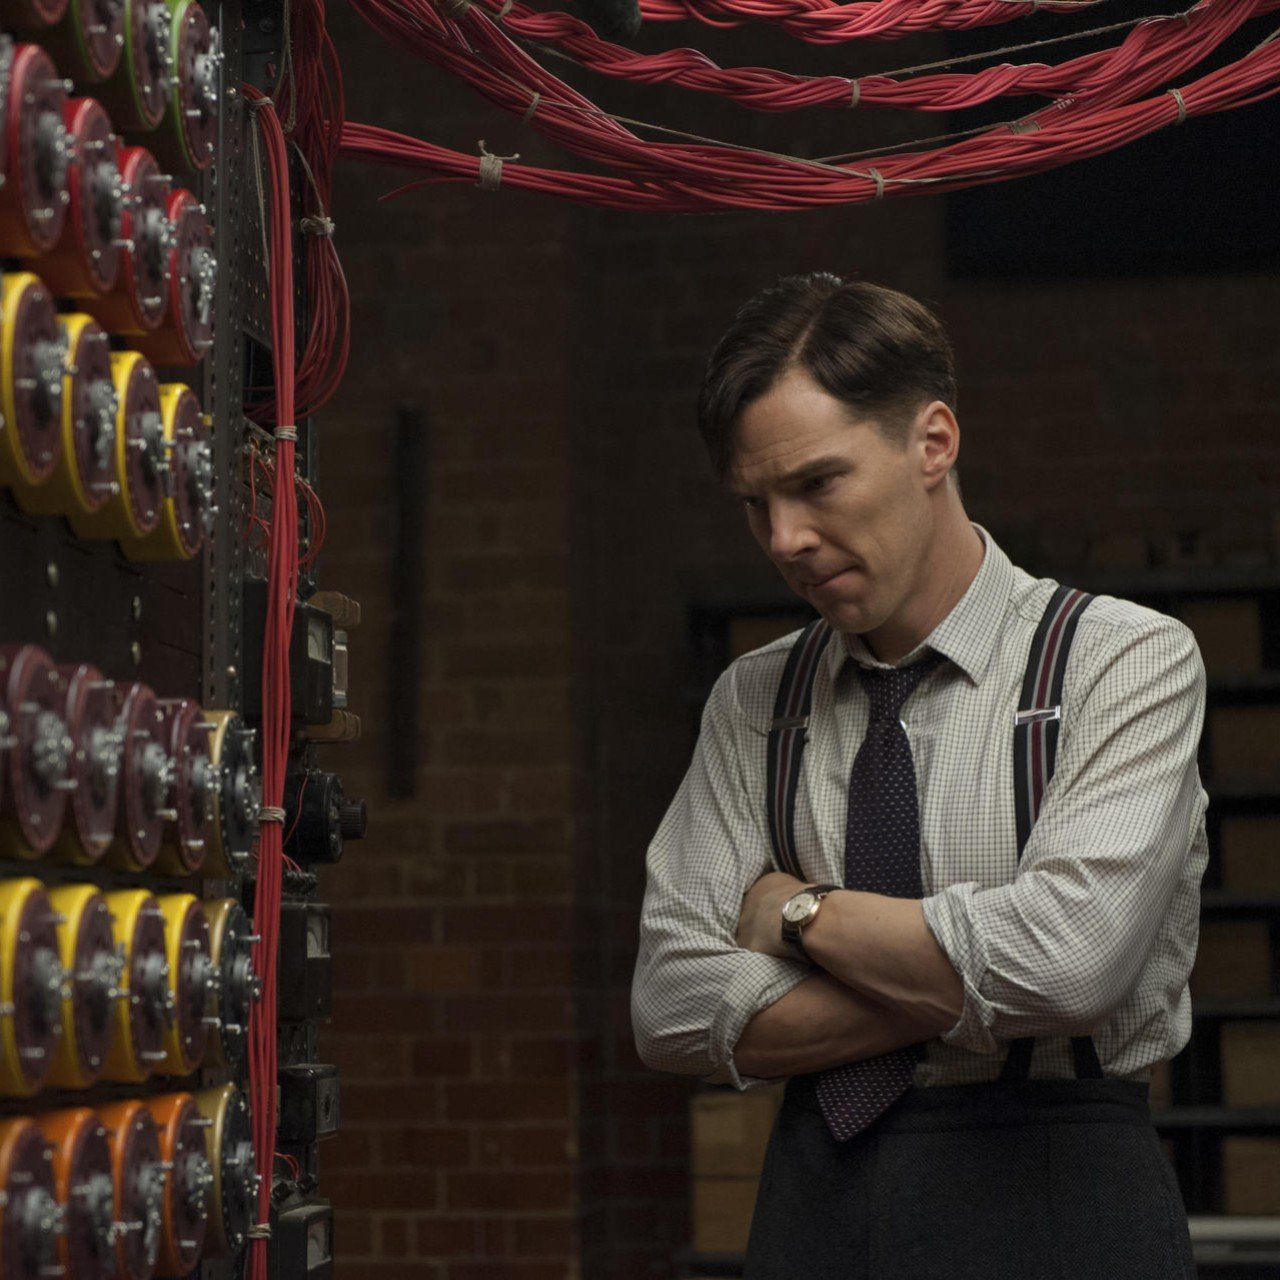 Benedict Cumberbatch on Alan Turing's legacy and the challenge it